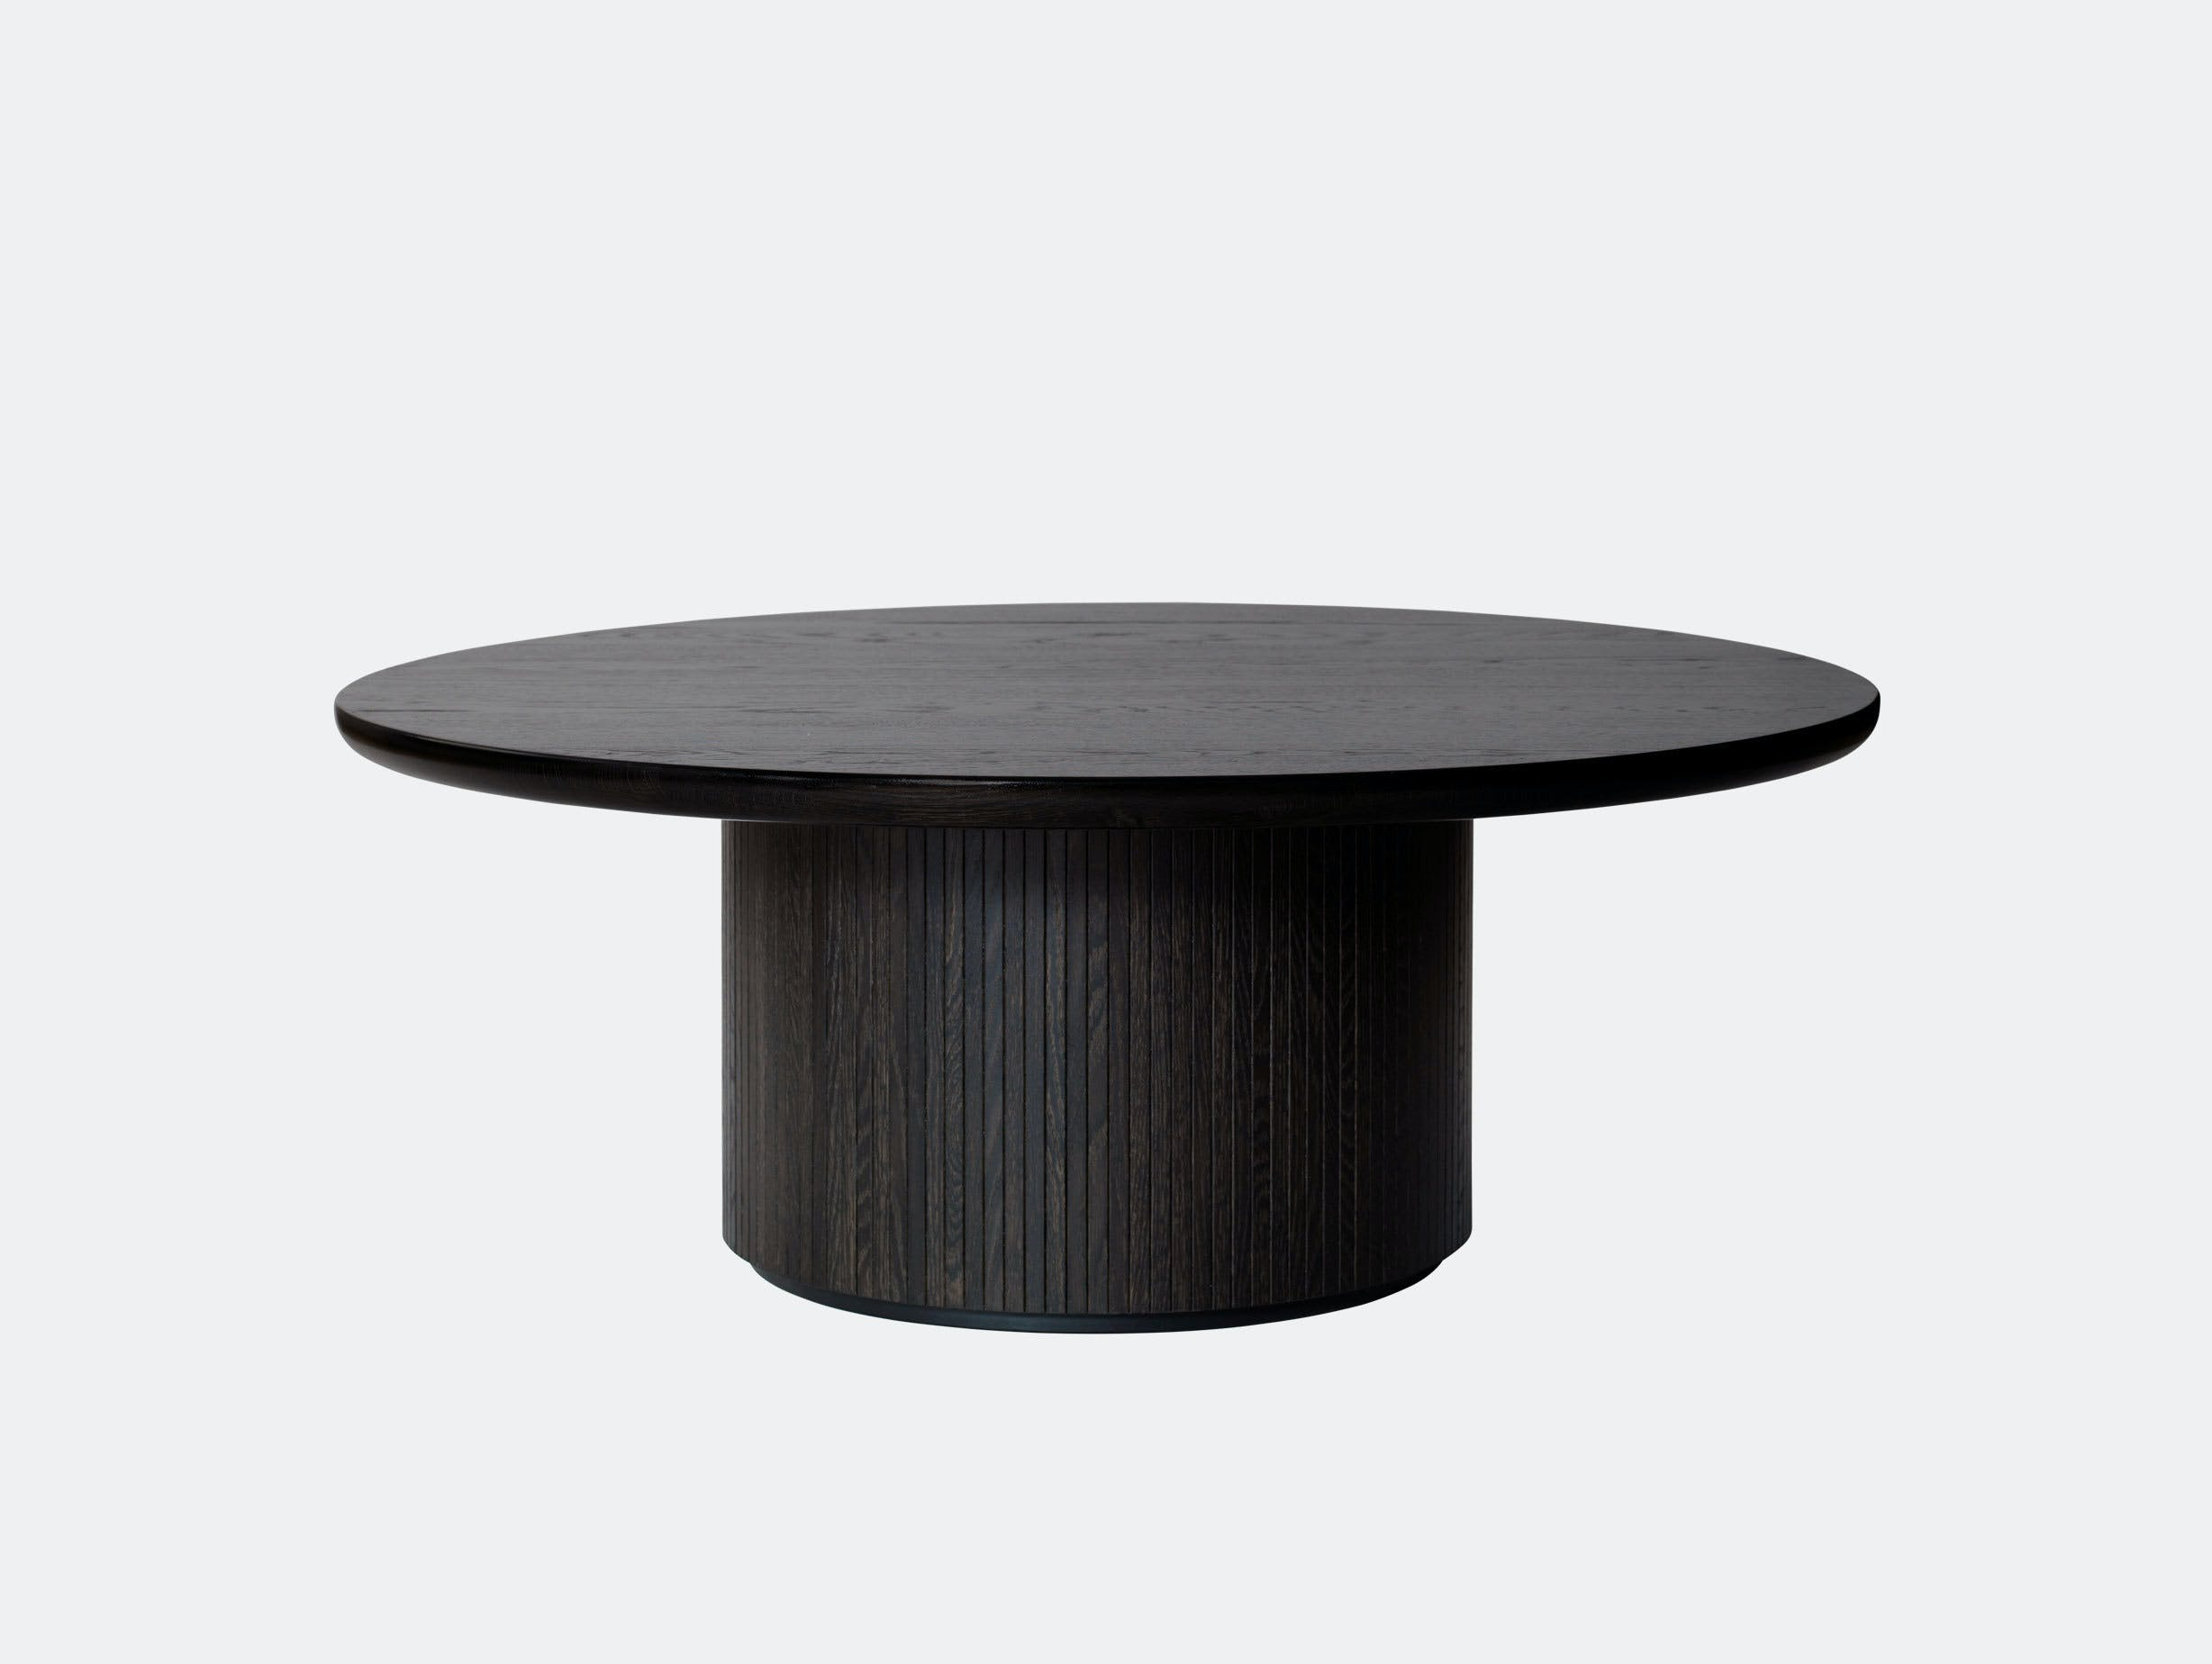 Gubi Moon Coffee Table dia 120cm black st oak Space Copenhagen